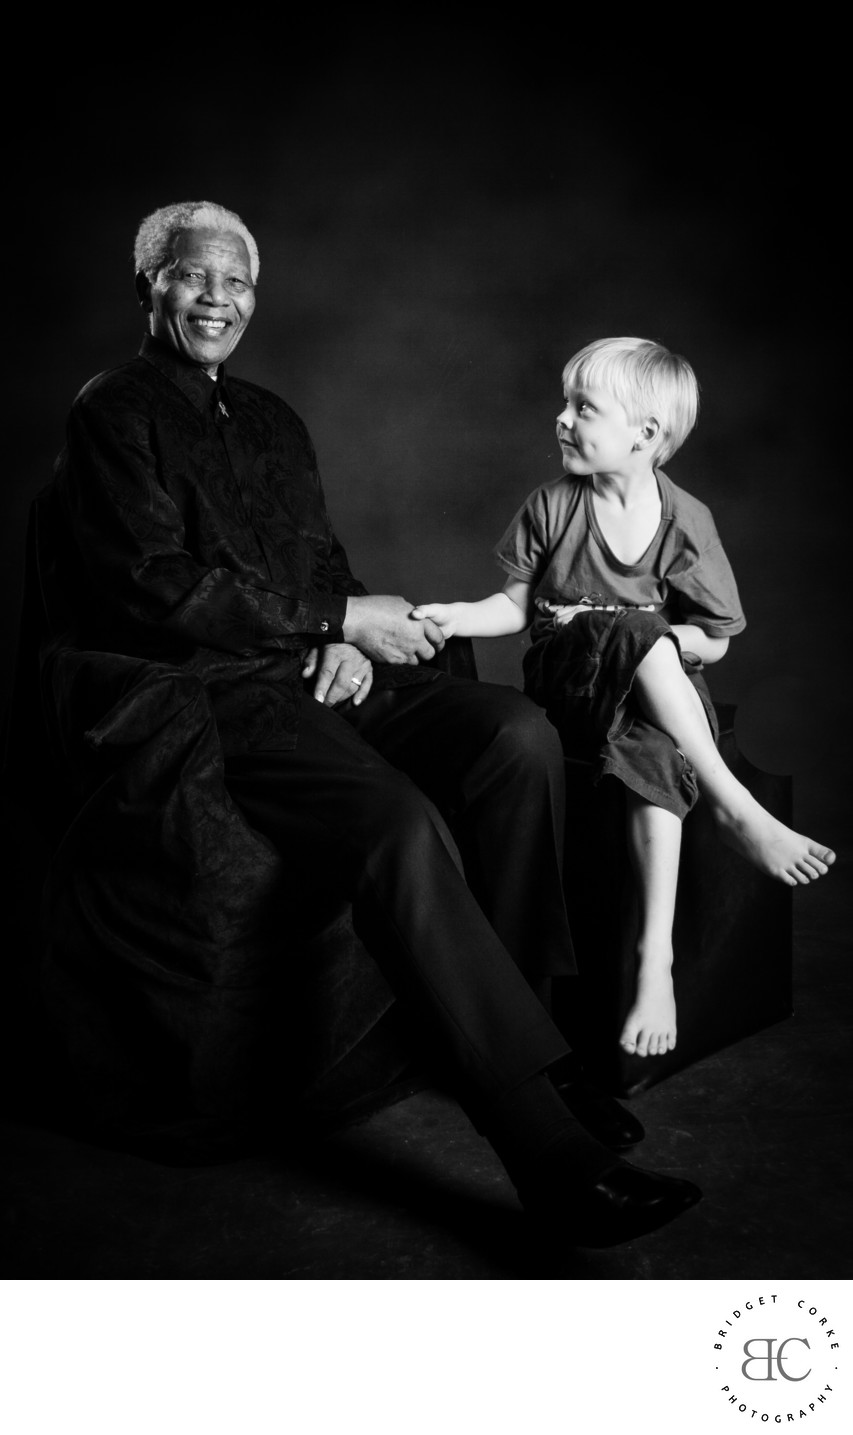 JOHANNESBURG: Experienced Child Portrait Photographer: Nelson Mandela